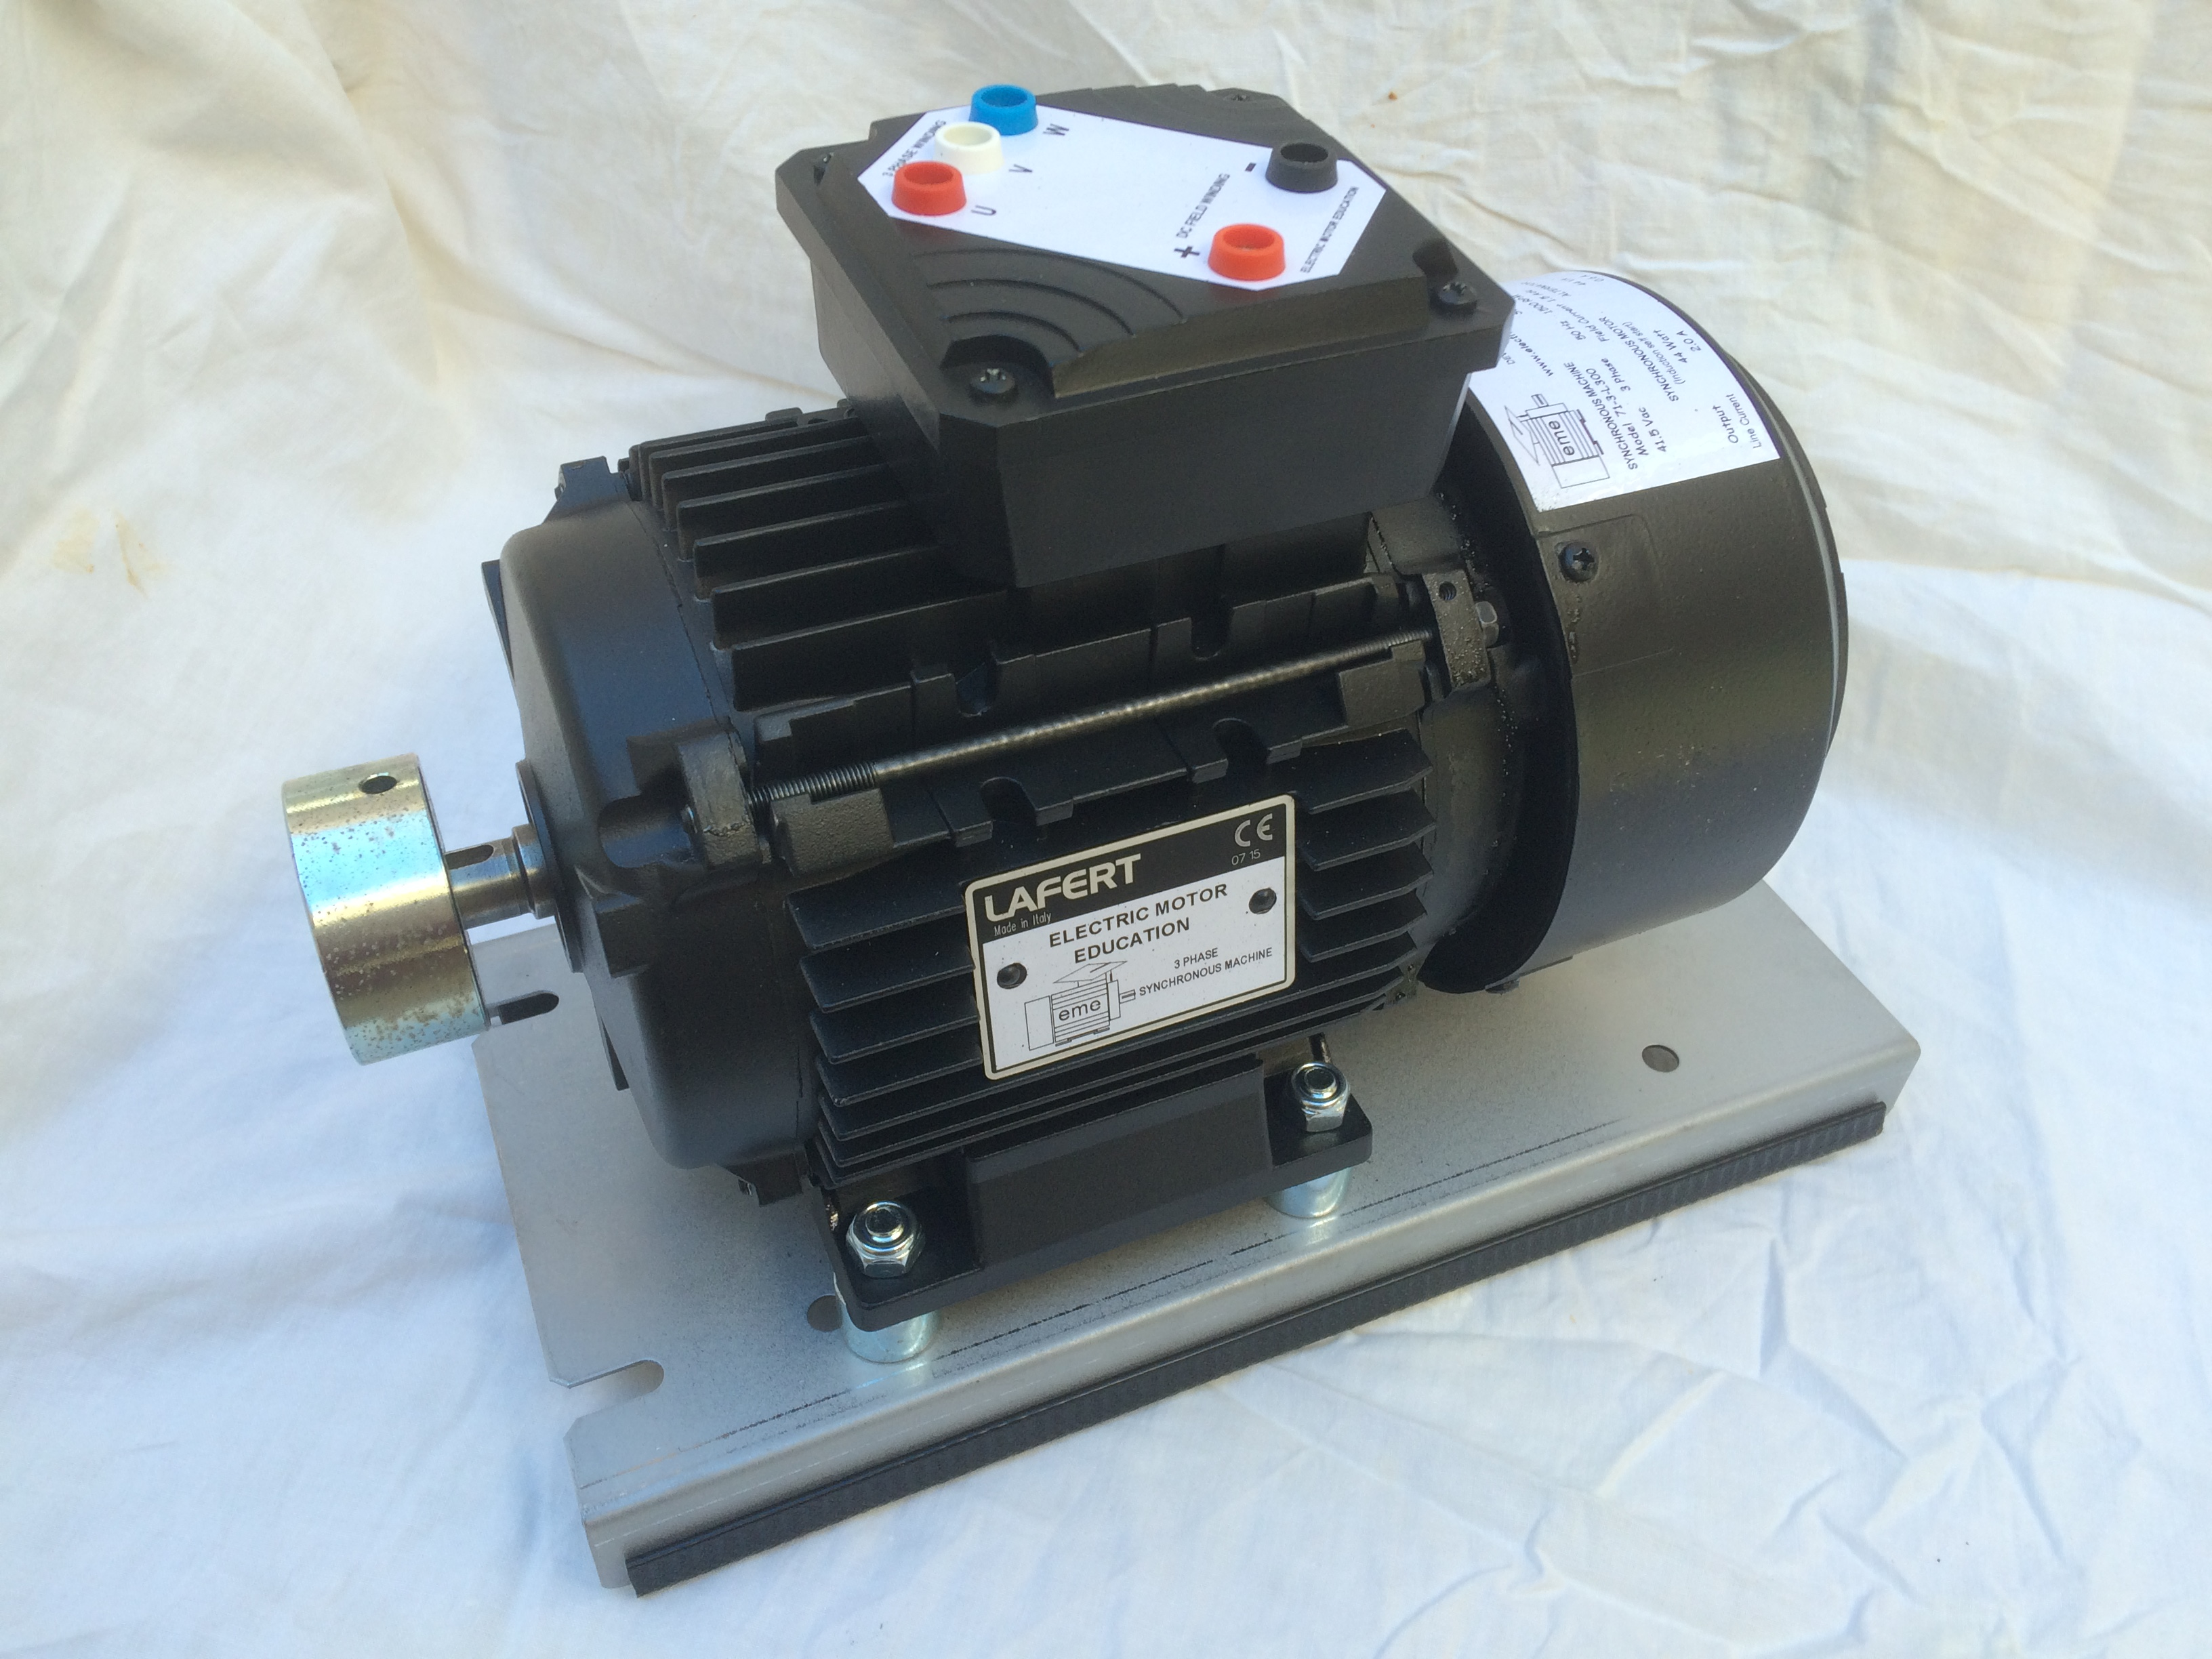 71-3-L300 : Motor/Alternator - 3 phase Synchronous, 44VA, 4 pole, 41.5Vac, 50Hz Image